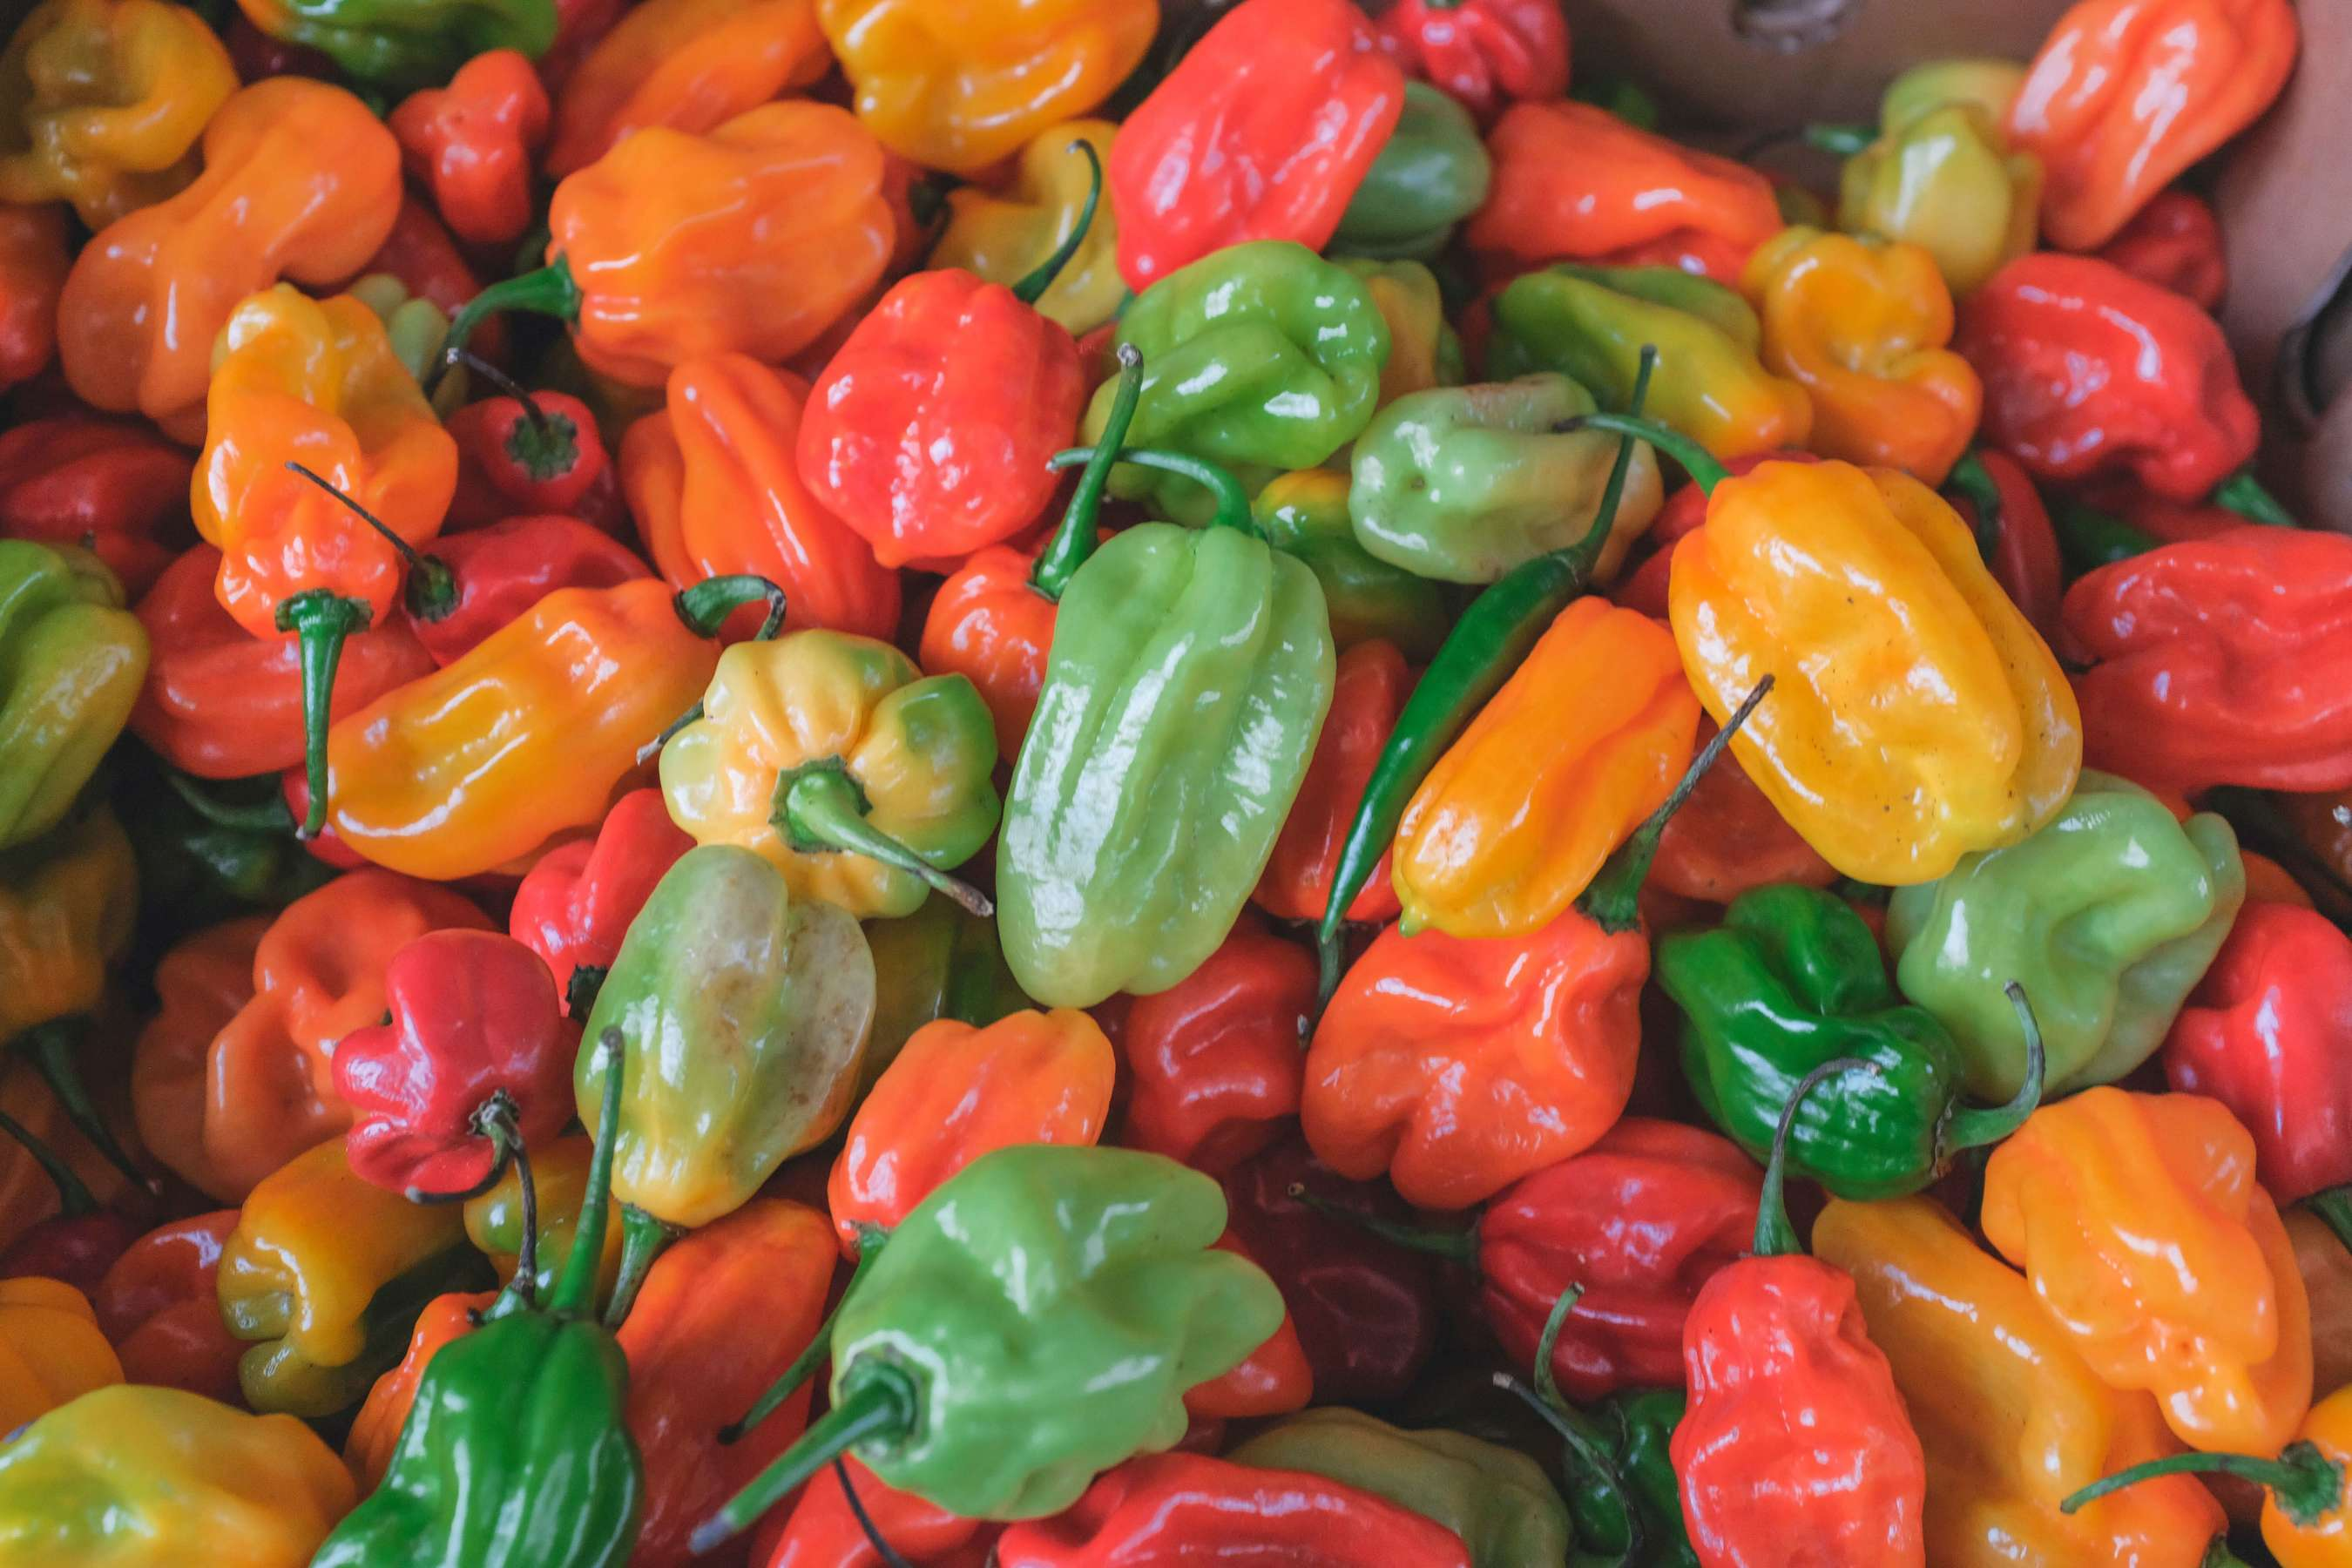 An array of colorful, hot peppers, filled with healing powers and capabilities